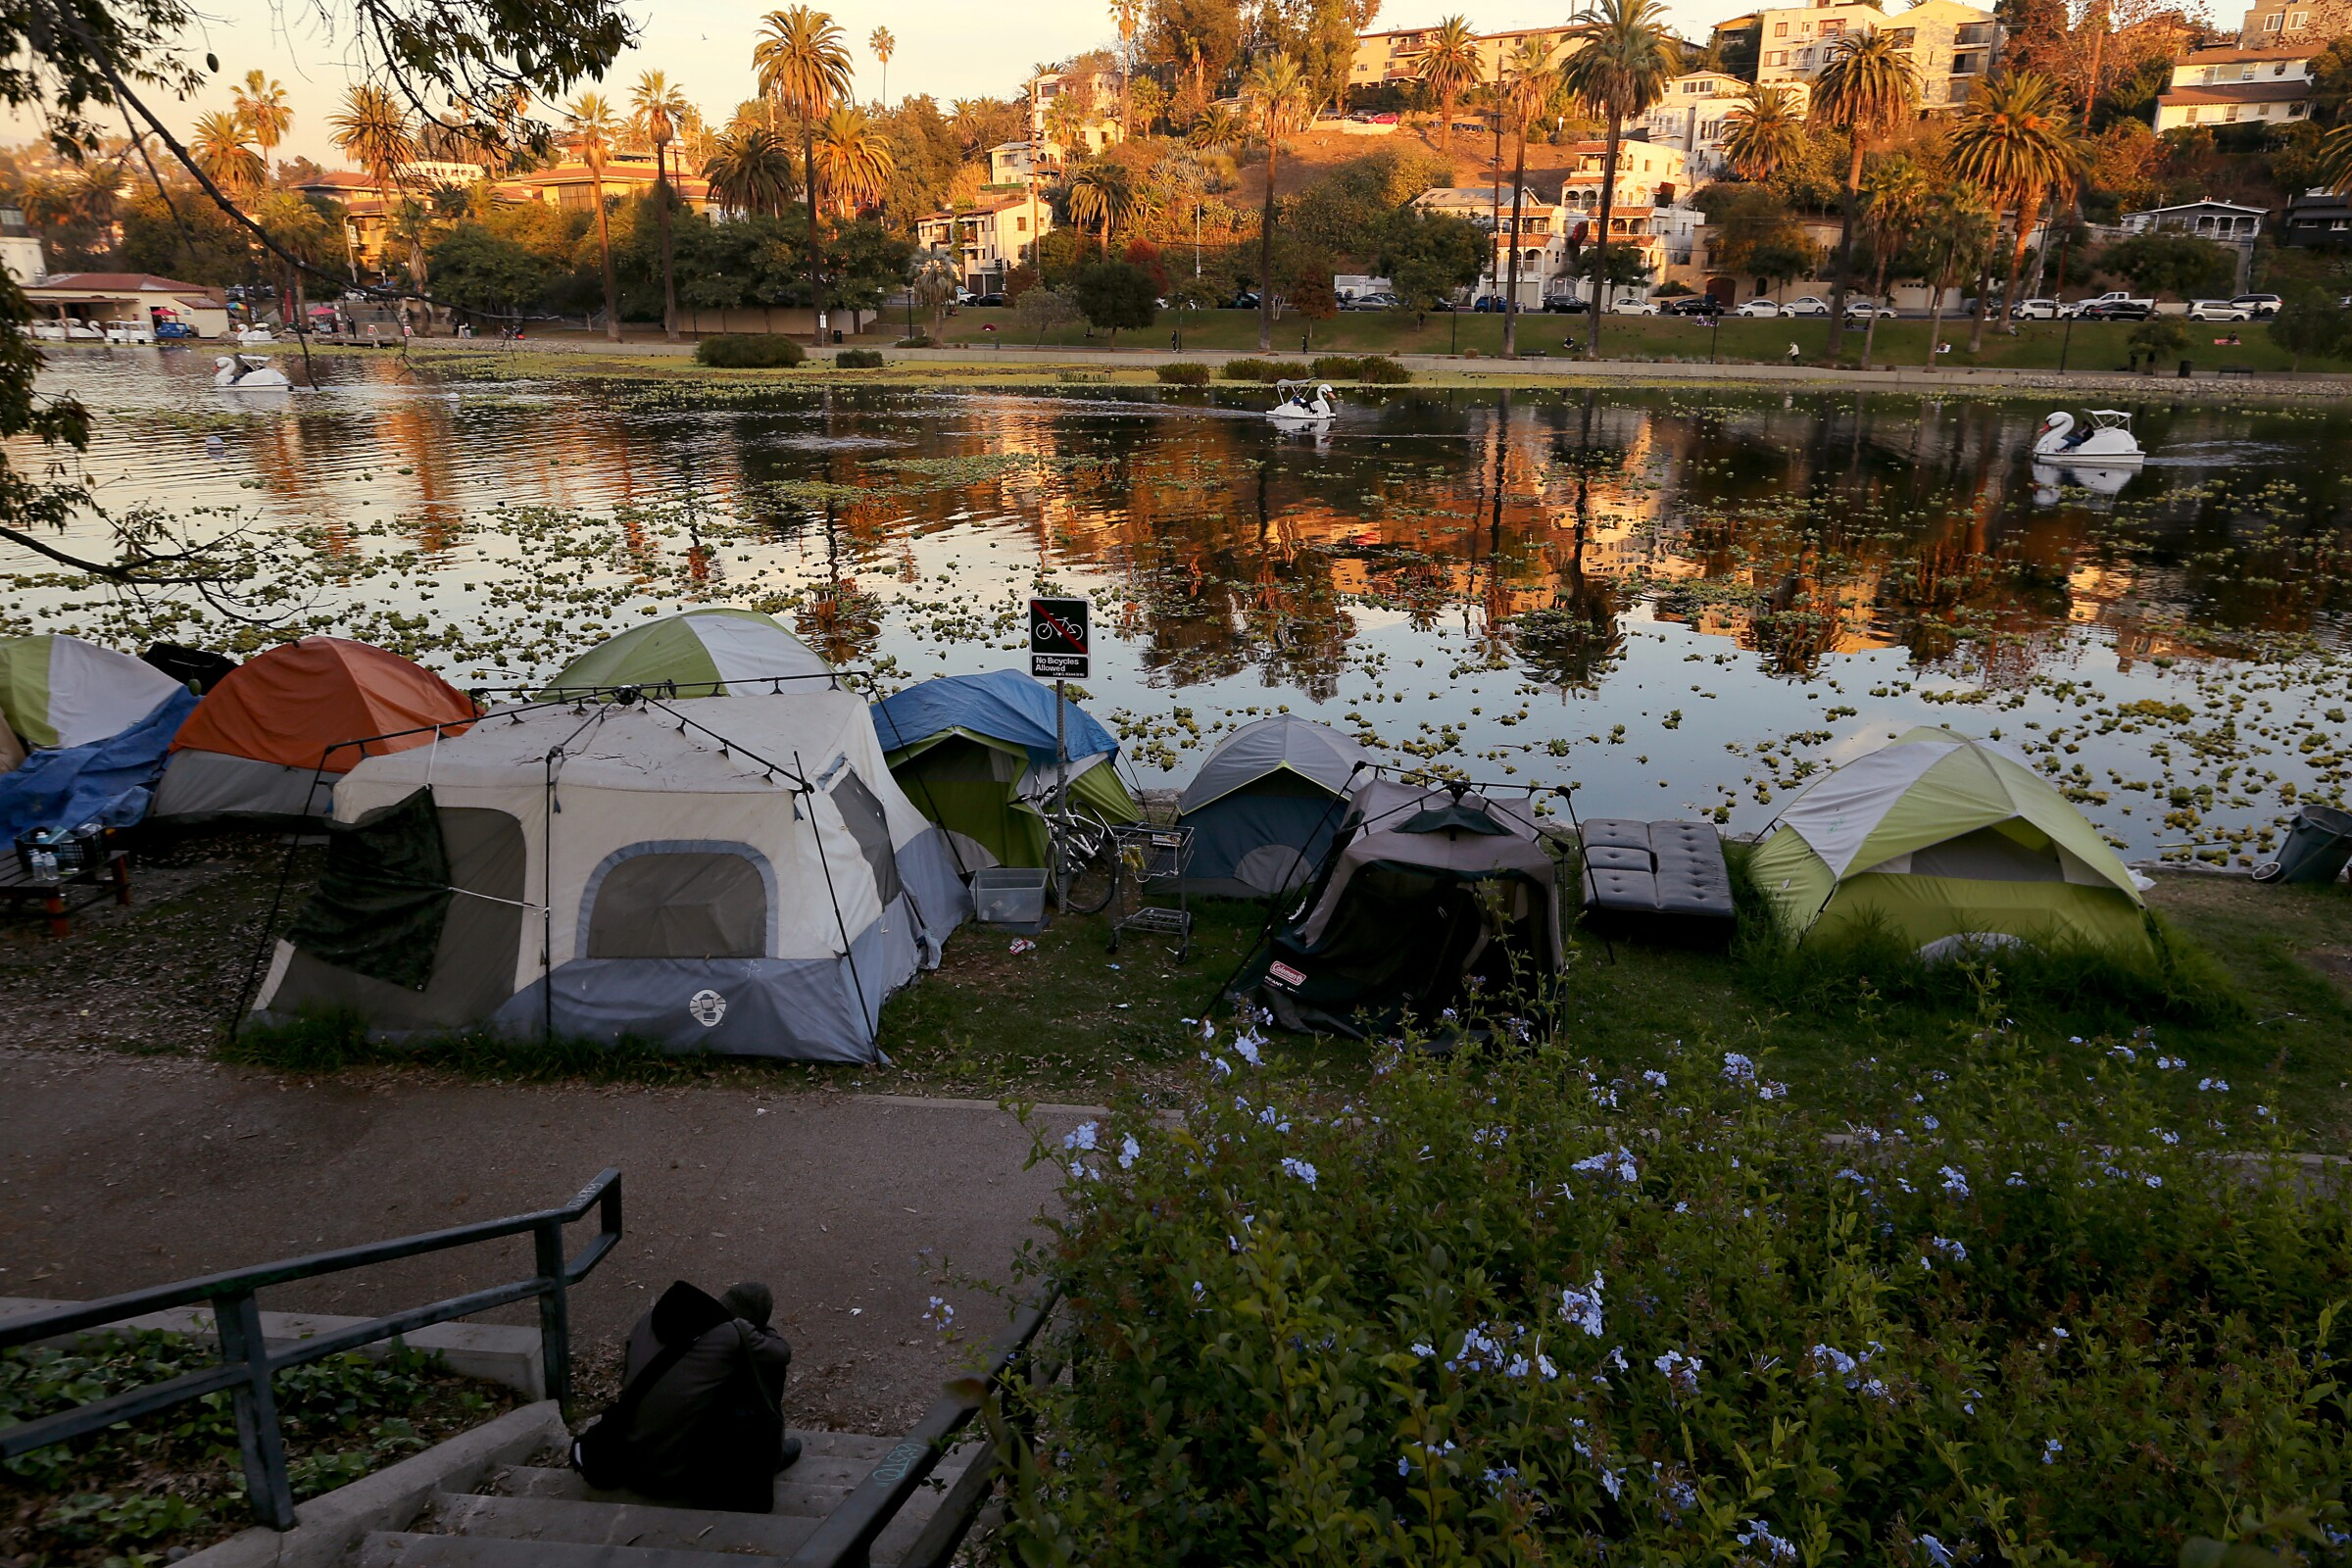 A homeless encampment sits in shadow on the banks of a lake, with houses illuminated by sunlight in the distance.